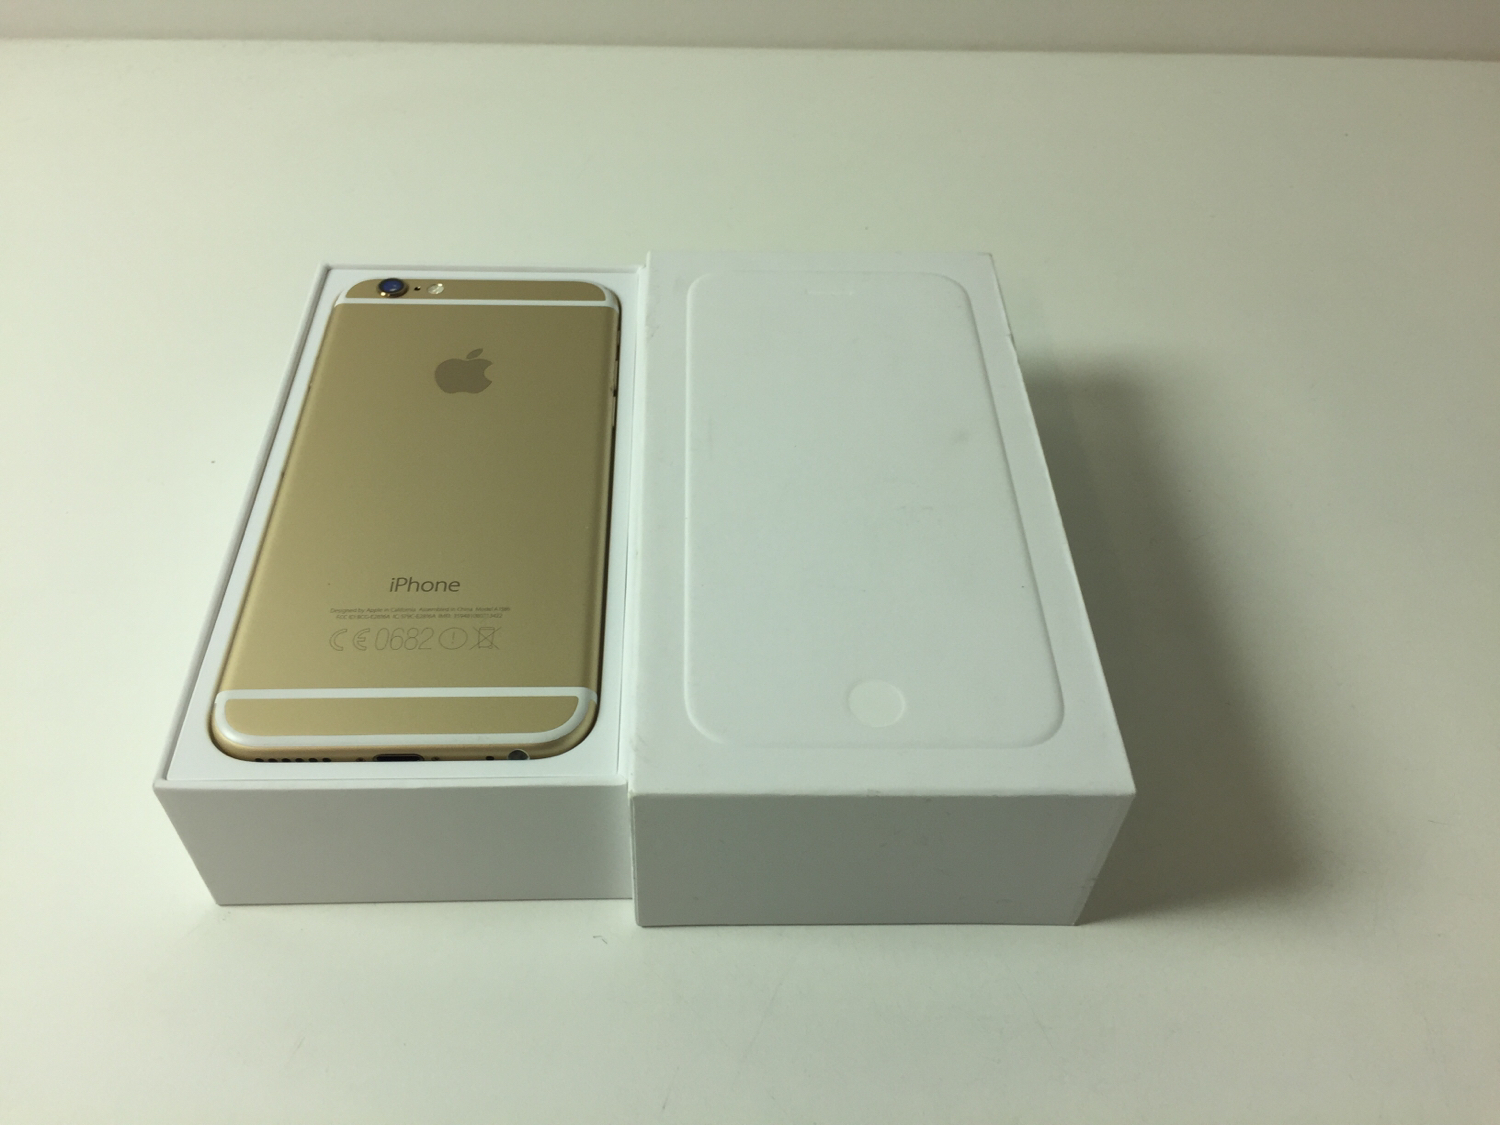 iPhone 6 64GB, 64GB, Gold, bild 2